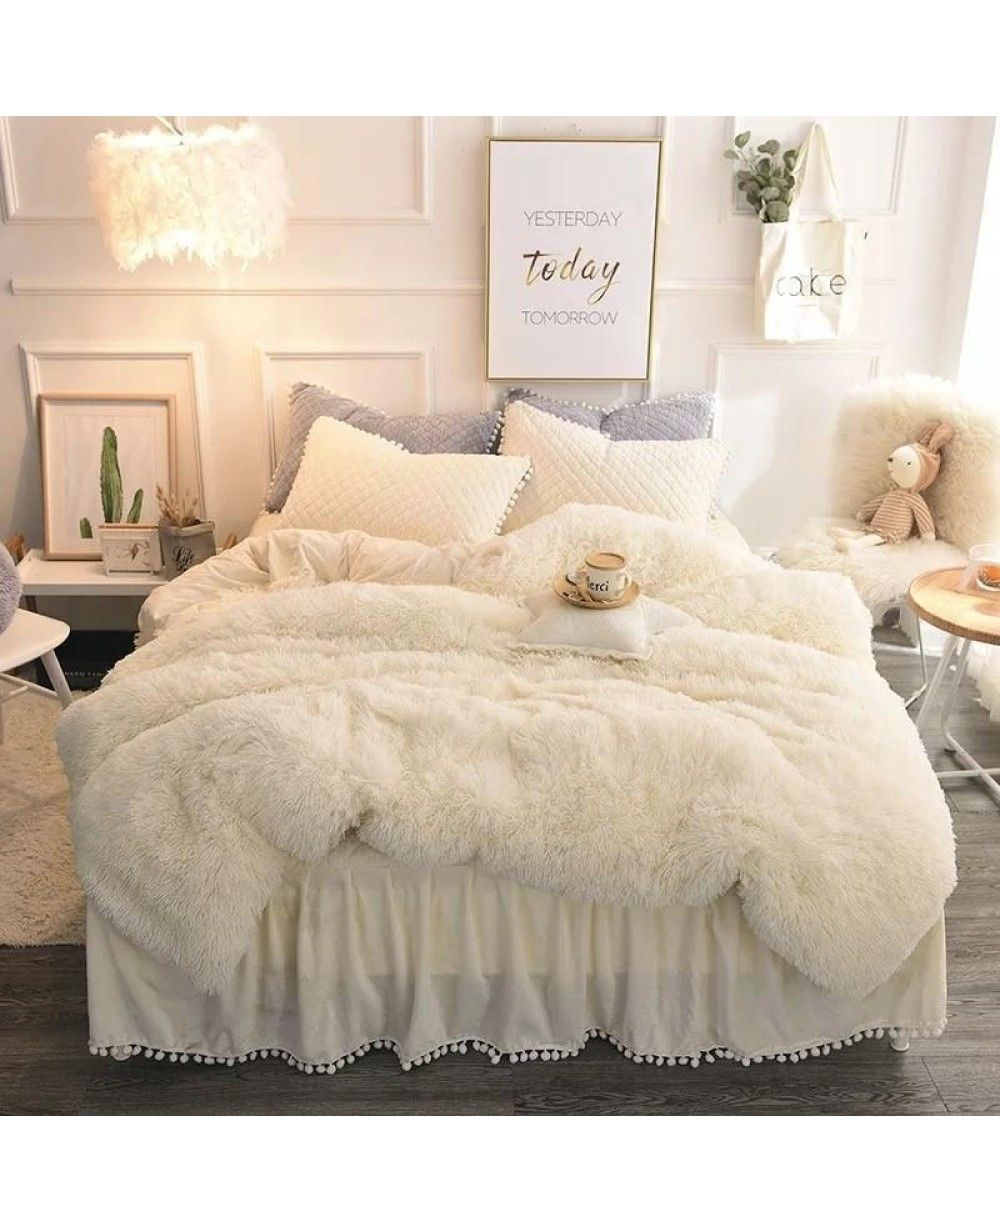 Boxing Day Luxury 4 Piece Faux Fur Bedding Set Products Fluffy Bedding Bedding Sets Bedroom Decor